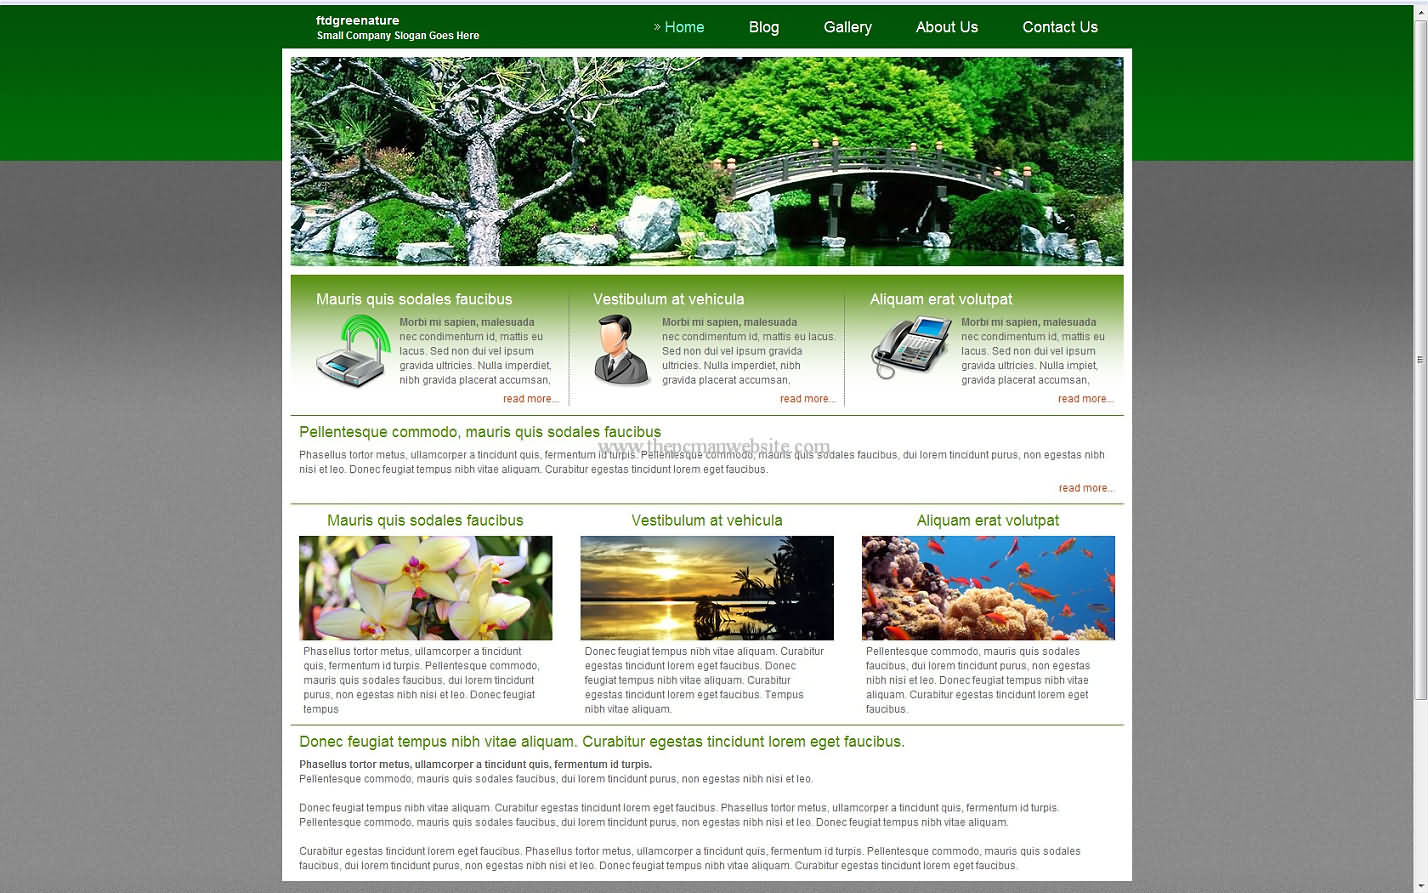 Ftdgreenature css template